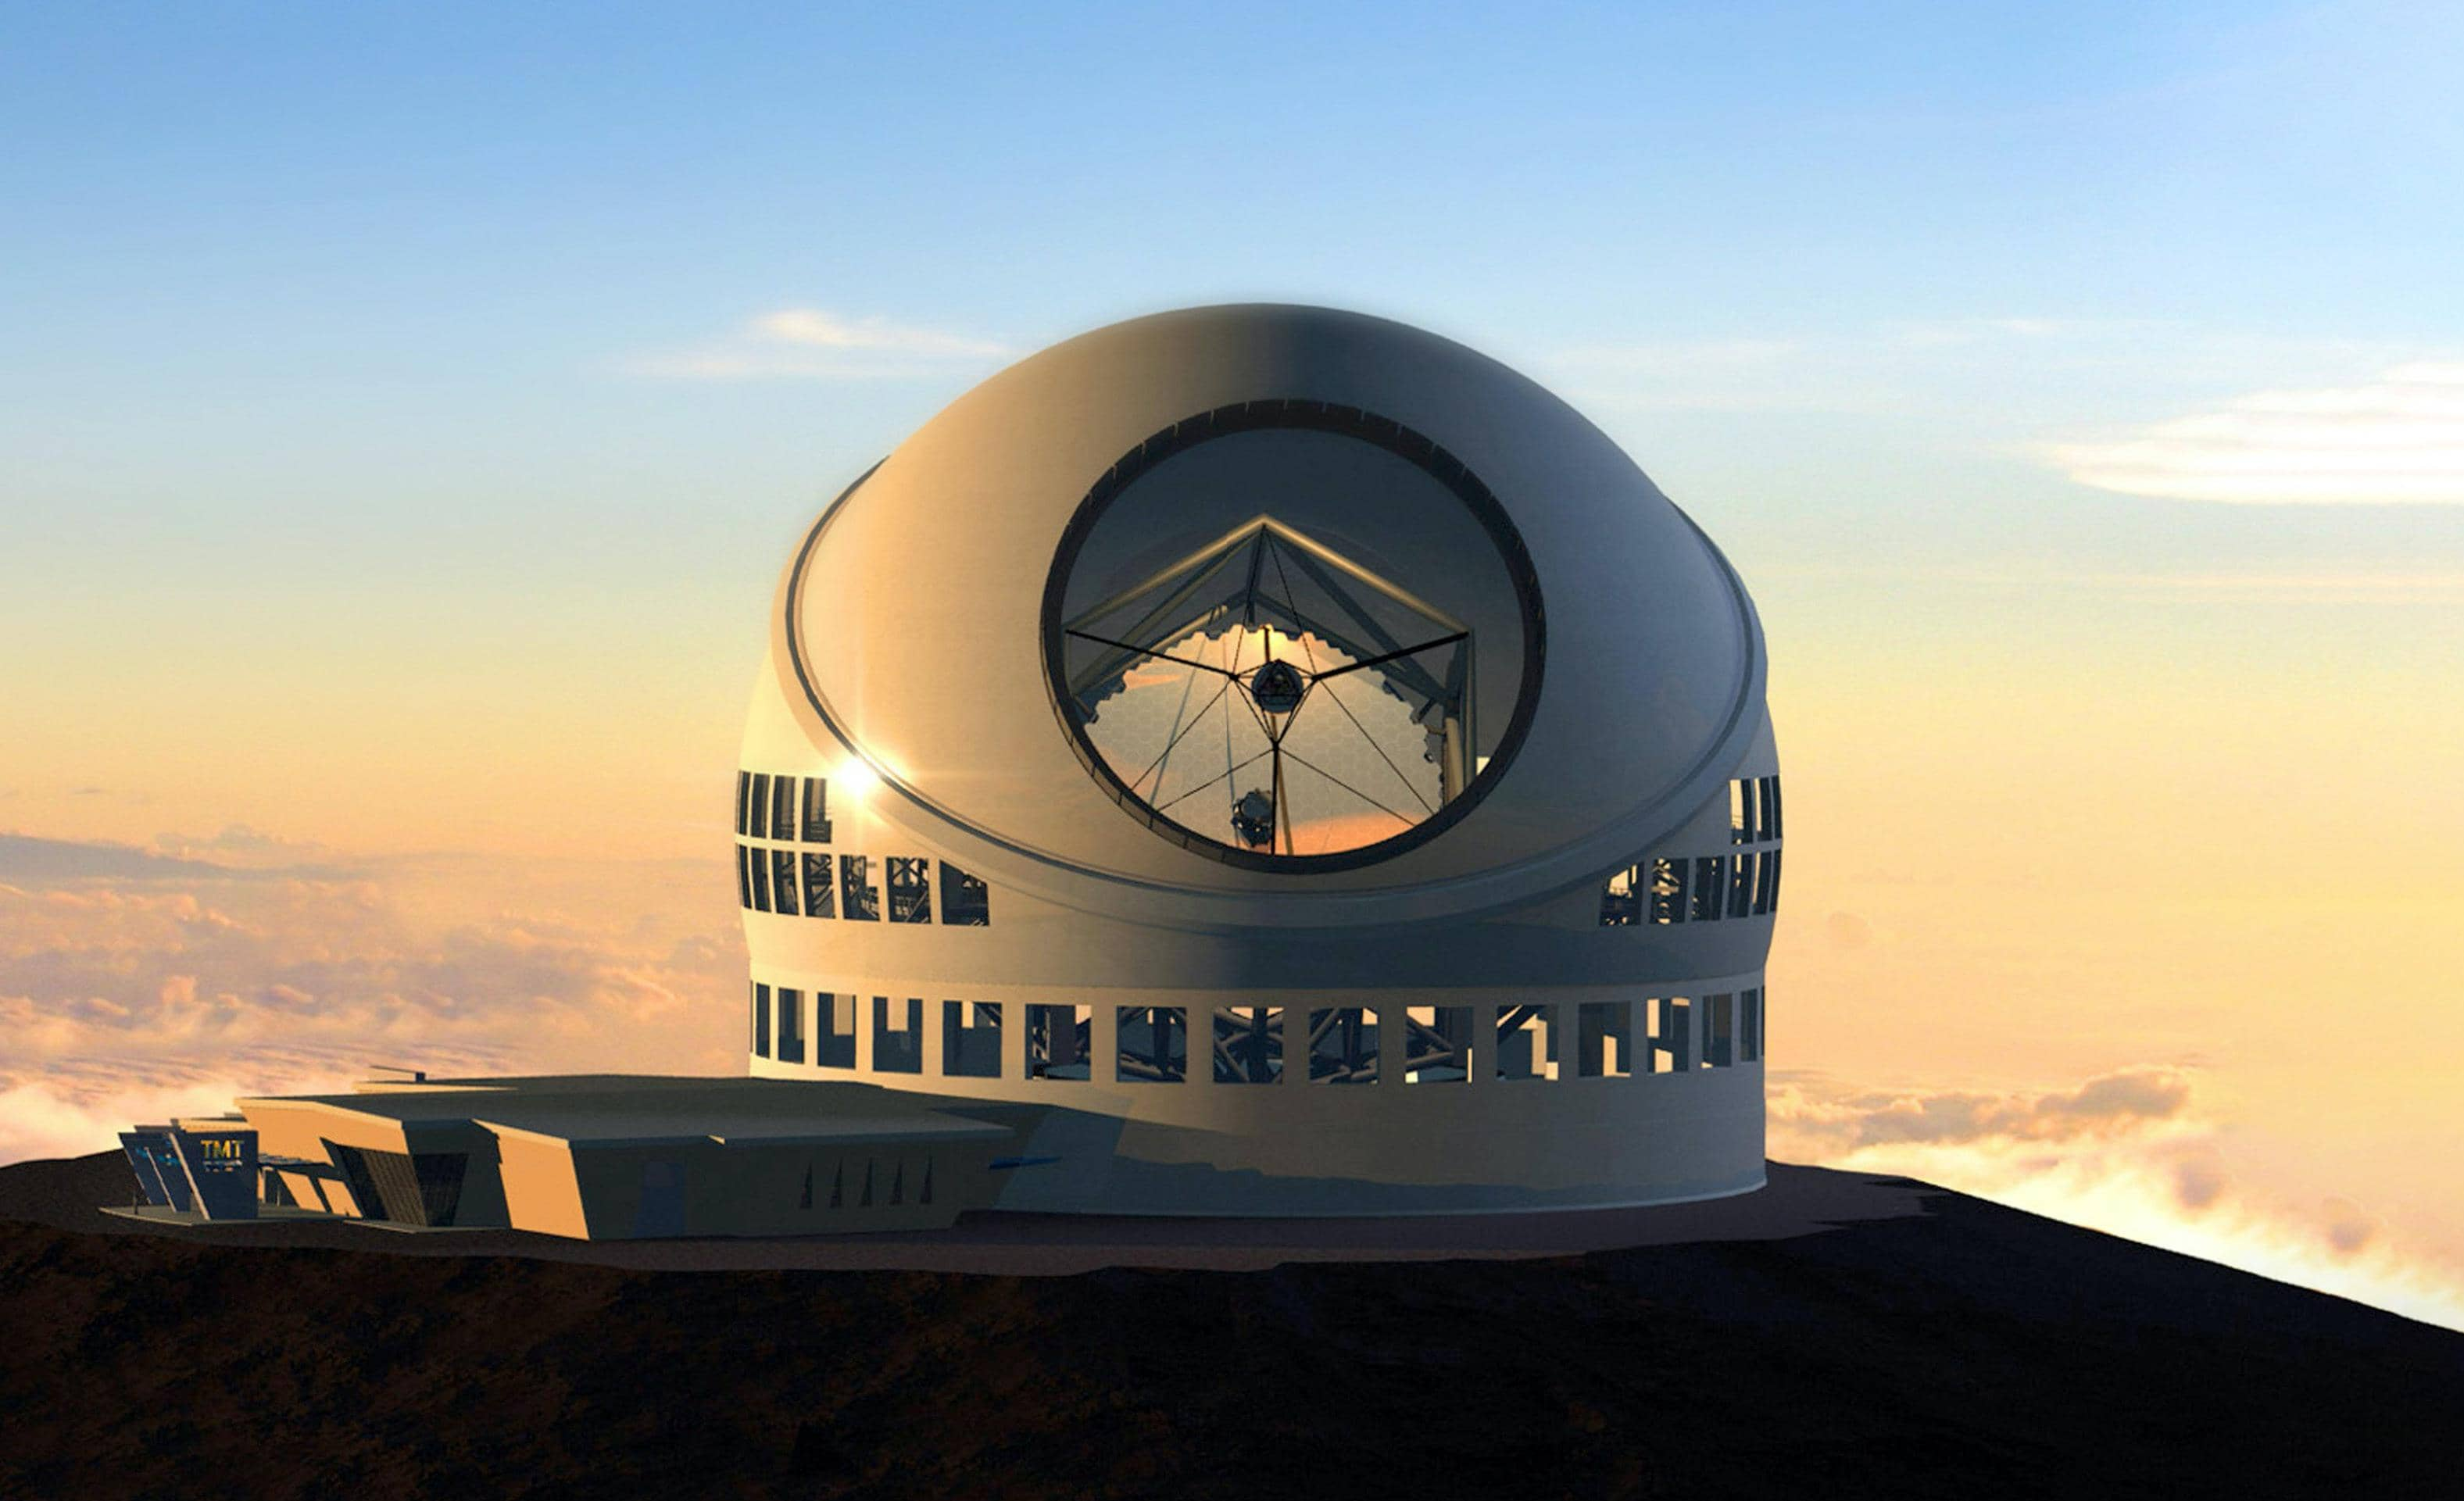 JAPAN SUSPENDS ANNUAL FUNDING FOR HAWAII TELESCOPE PROJECT